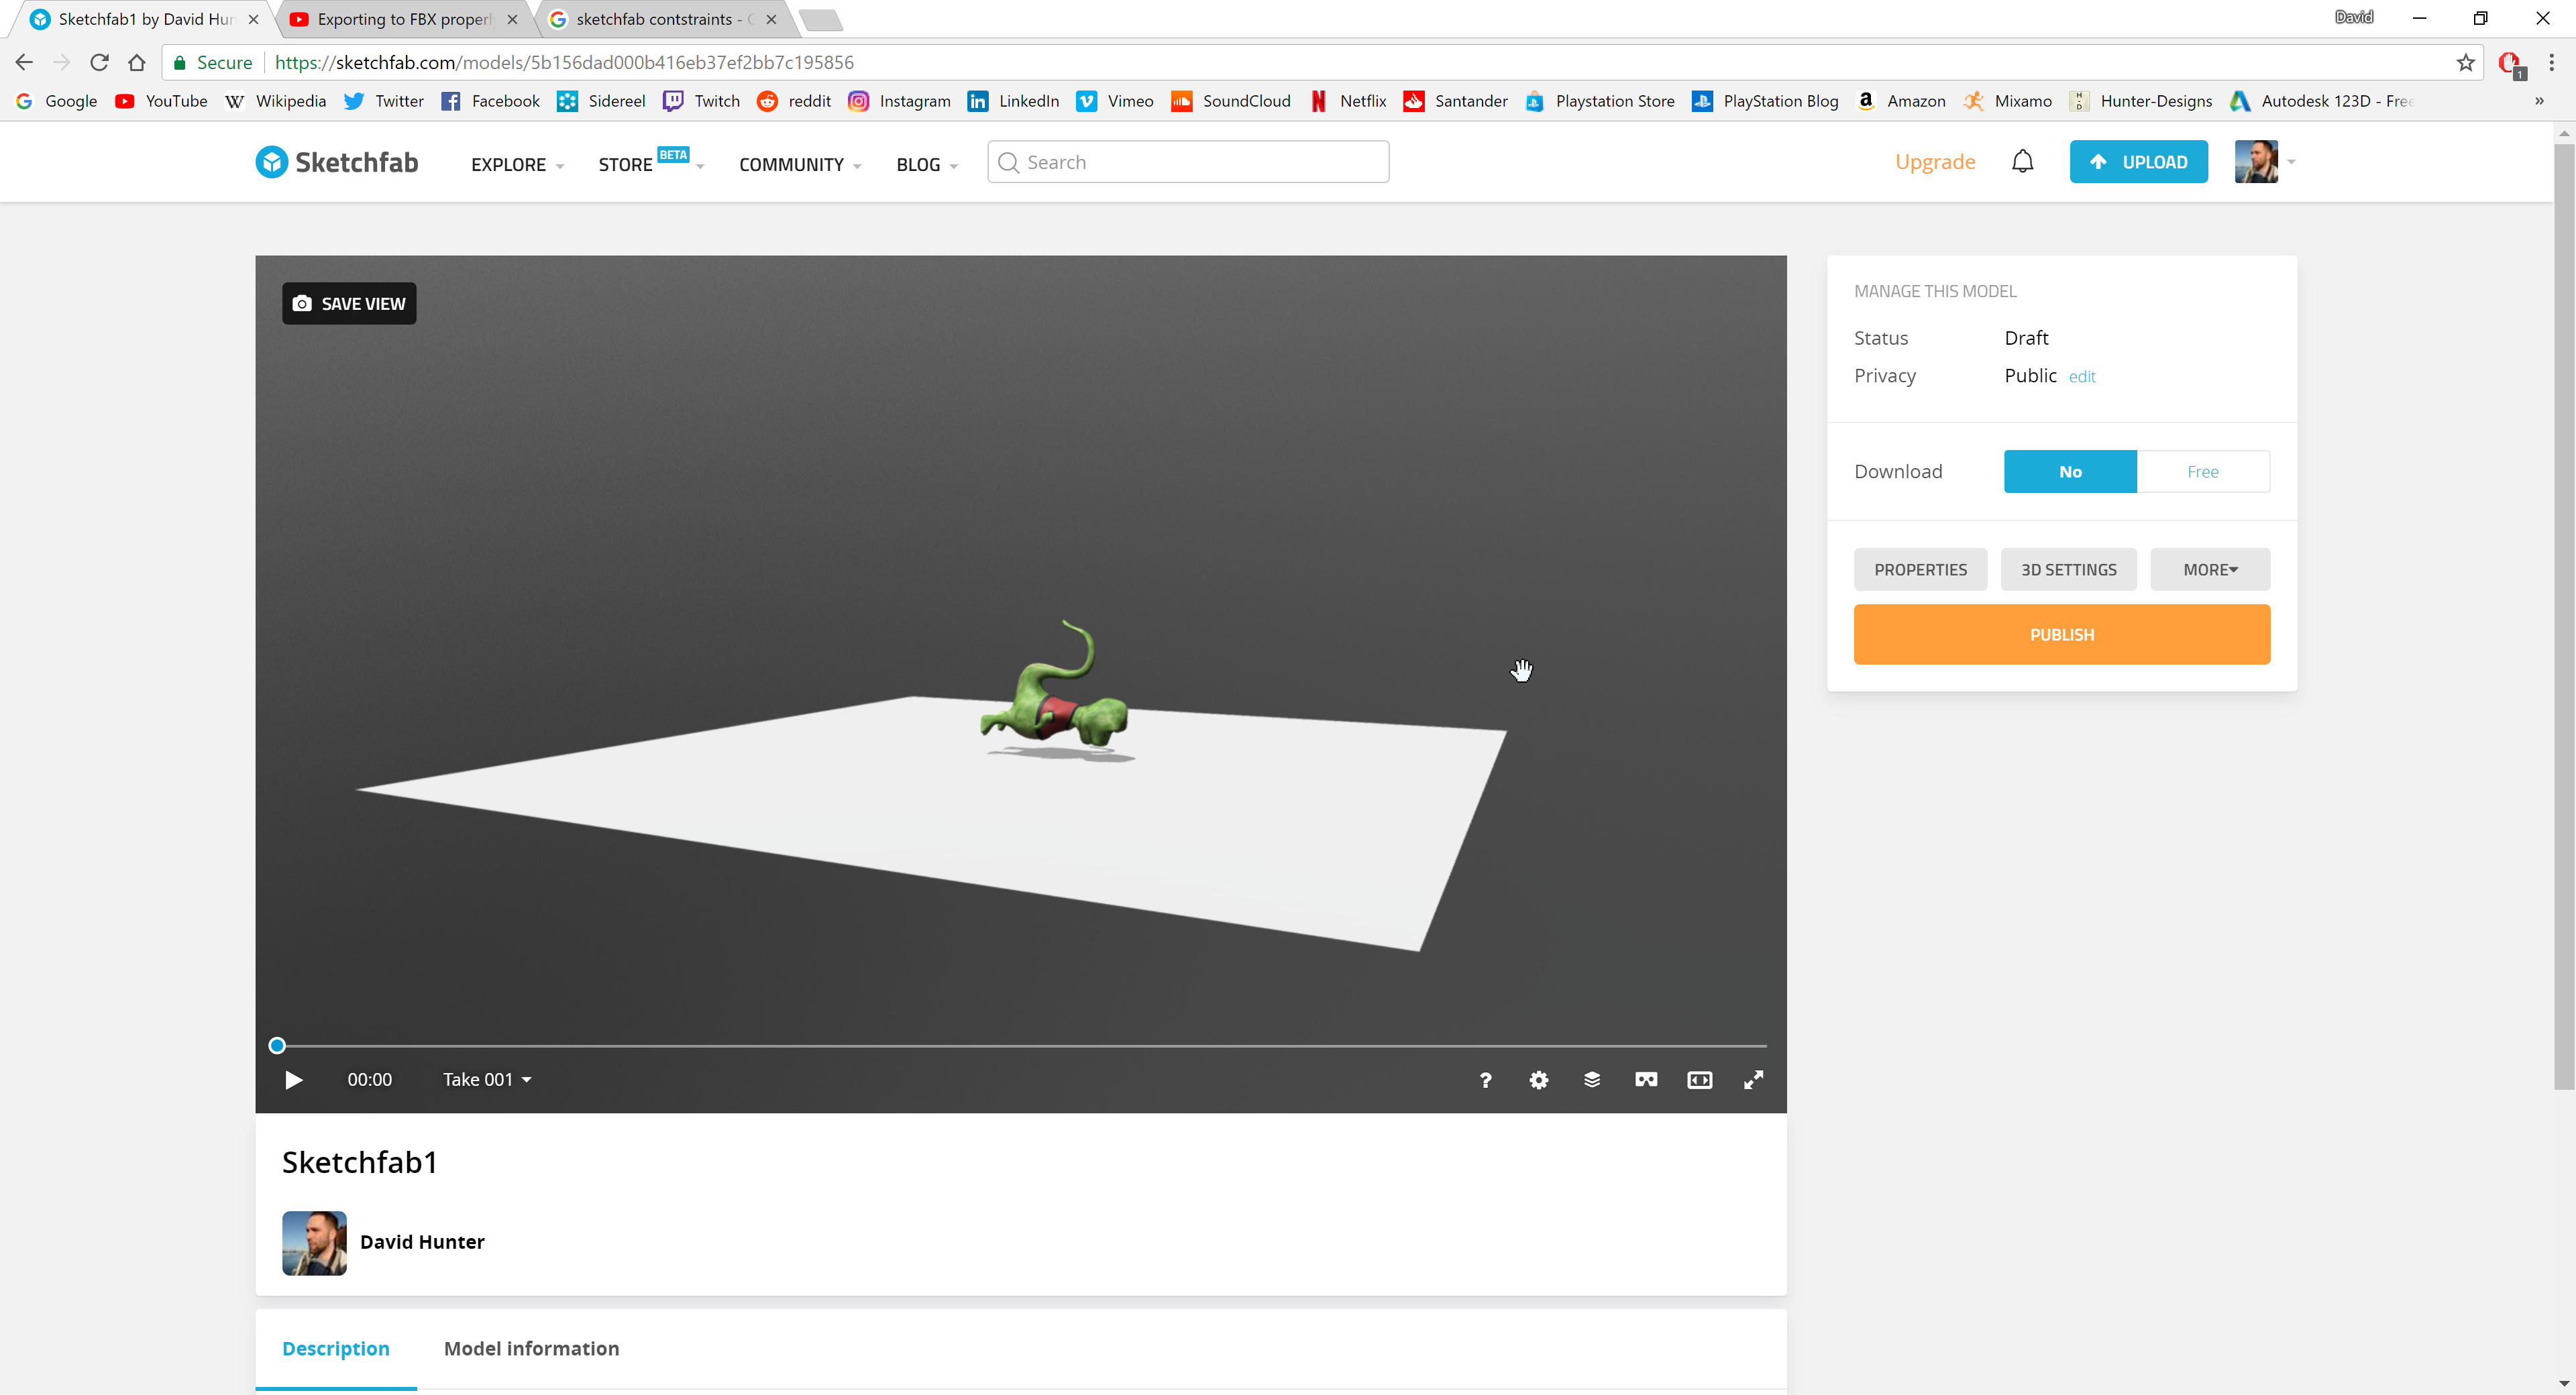 Having trouble uploading Control Rig with Blendshapes from